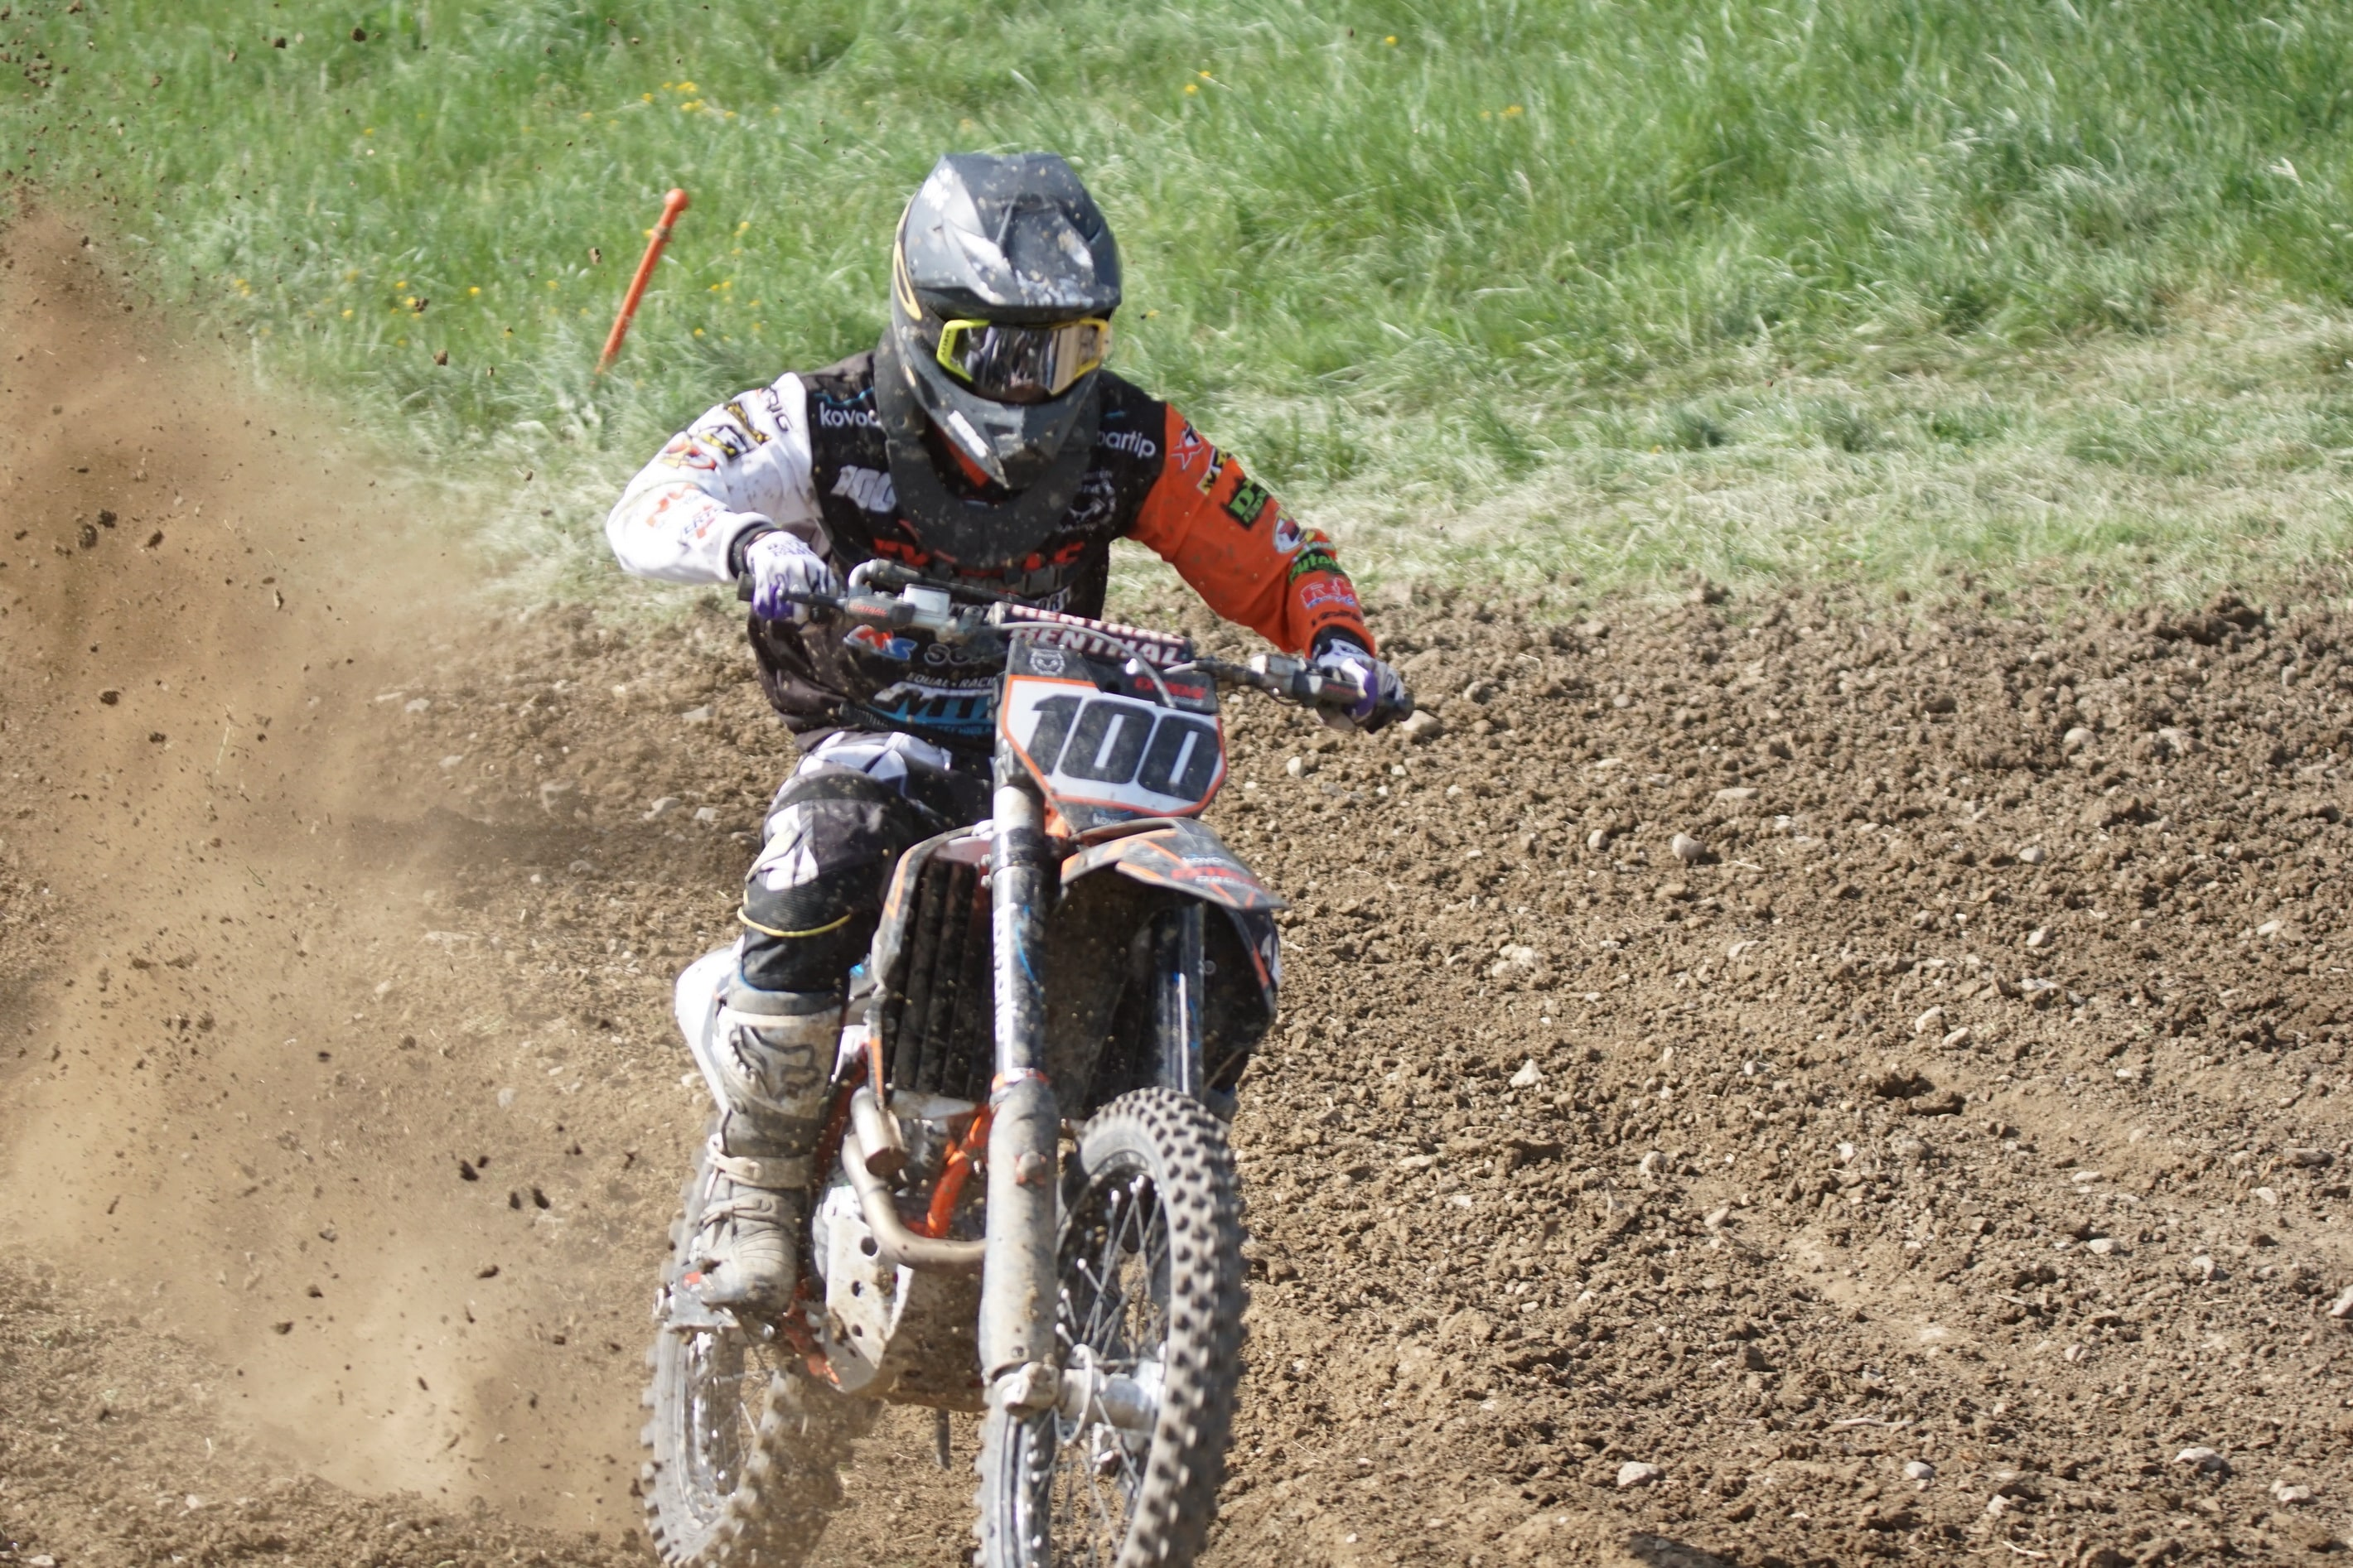 DSC 866_Moto Cross Sittendorf Teil1 am 29.04.2018